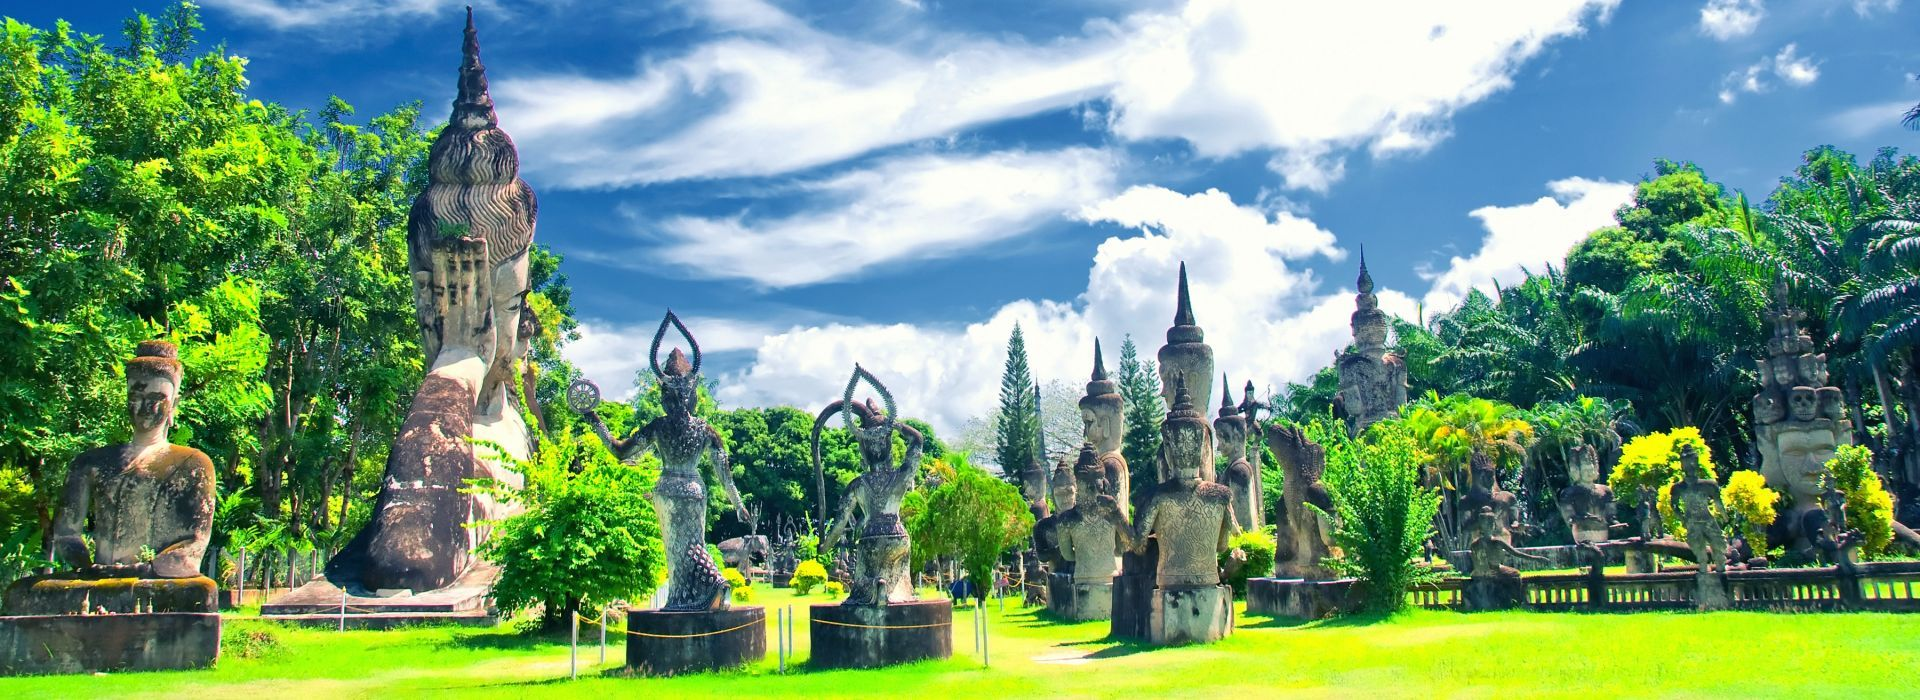 Cultural, religious and historic sites Tours in Laos